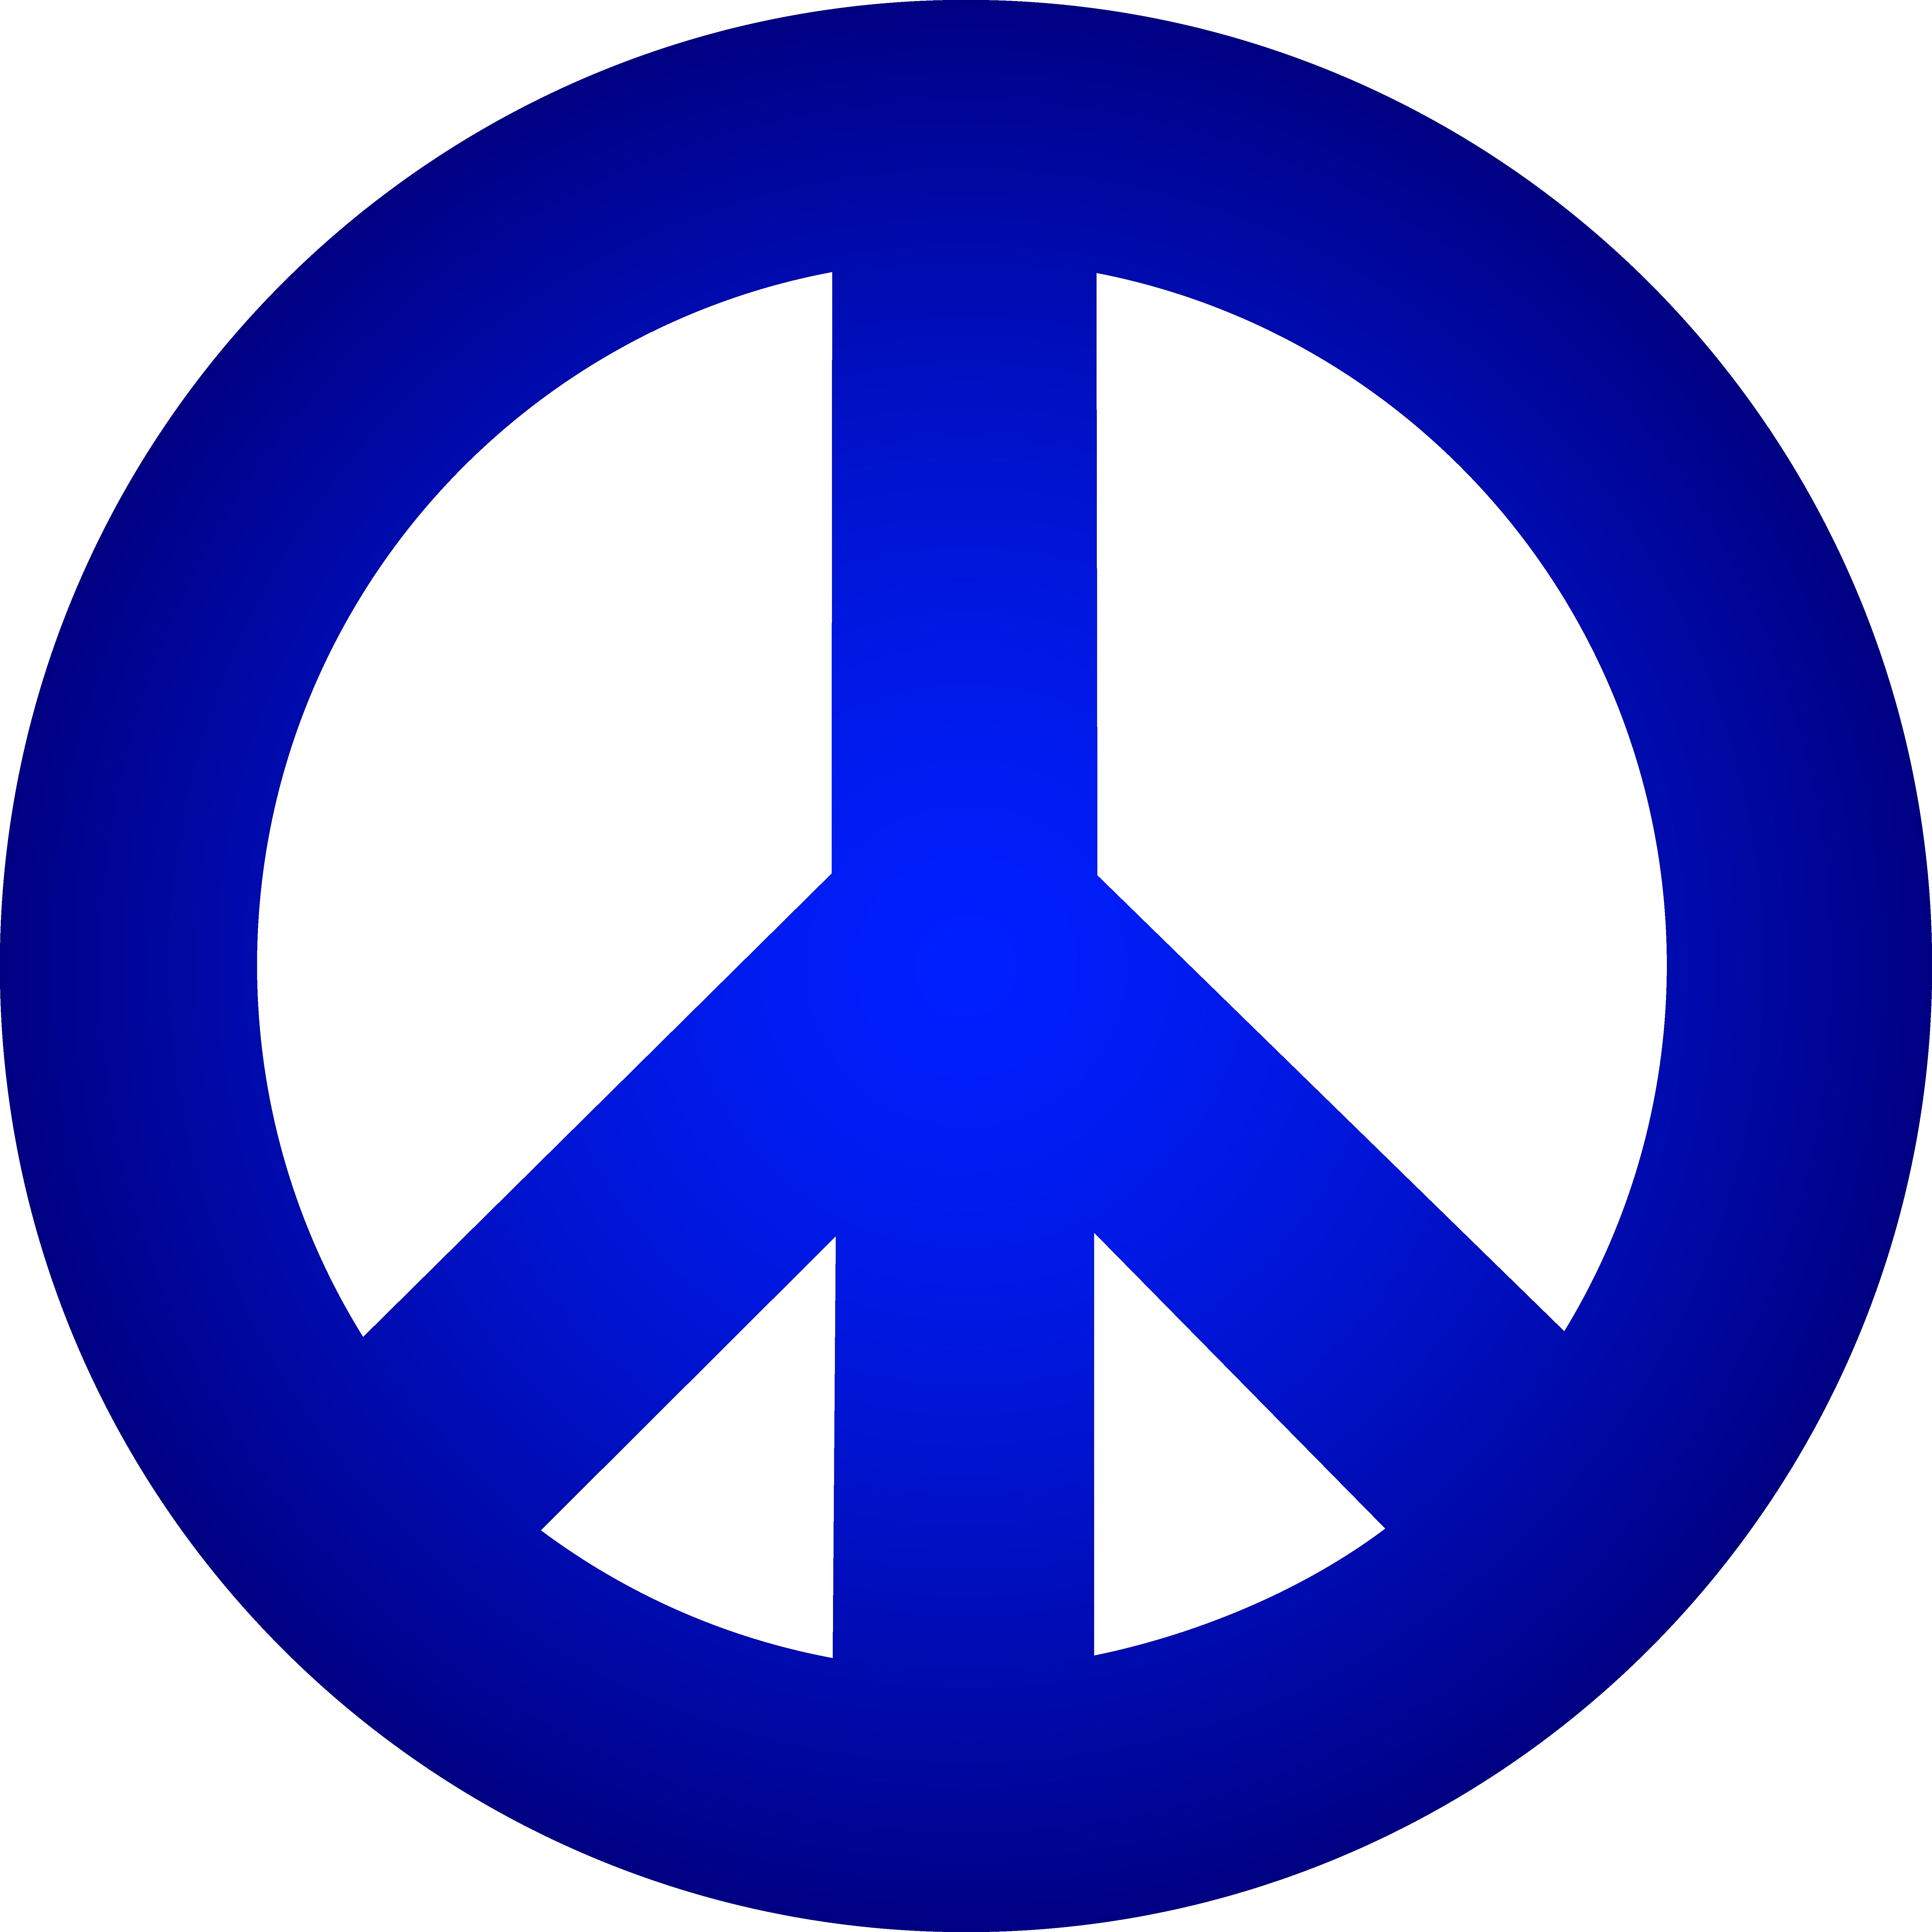 PNG Peace Sign File image #19846